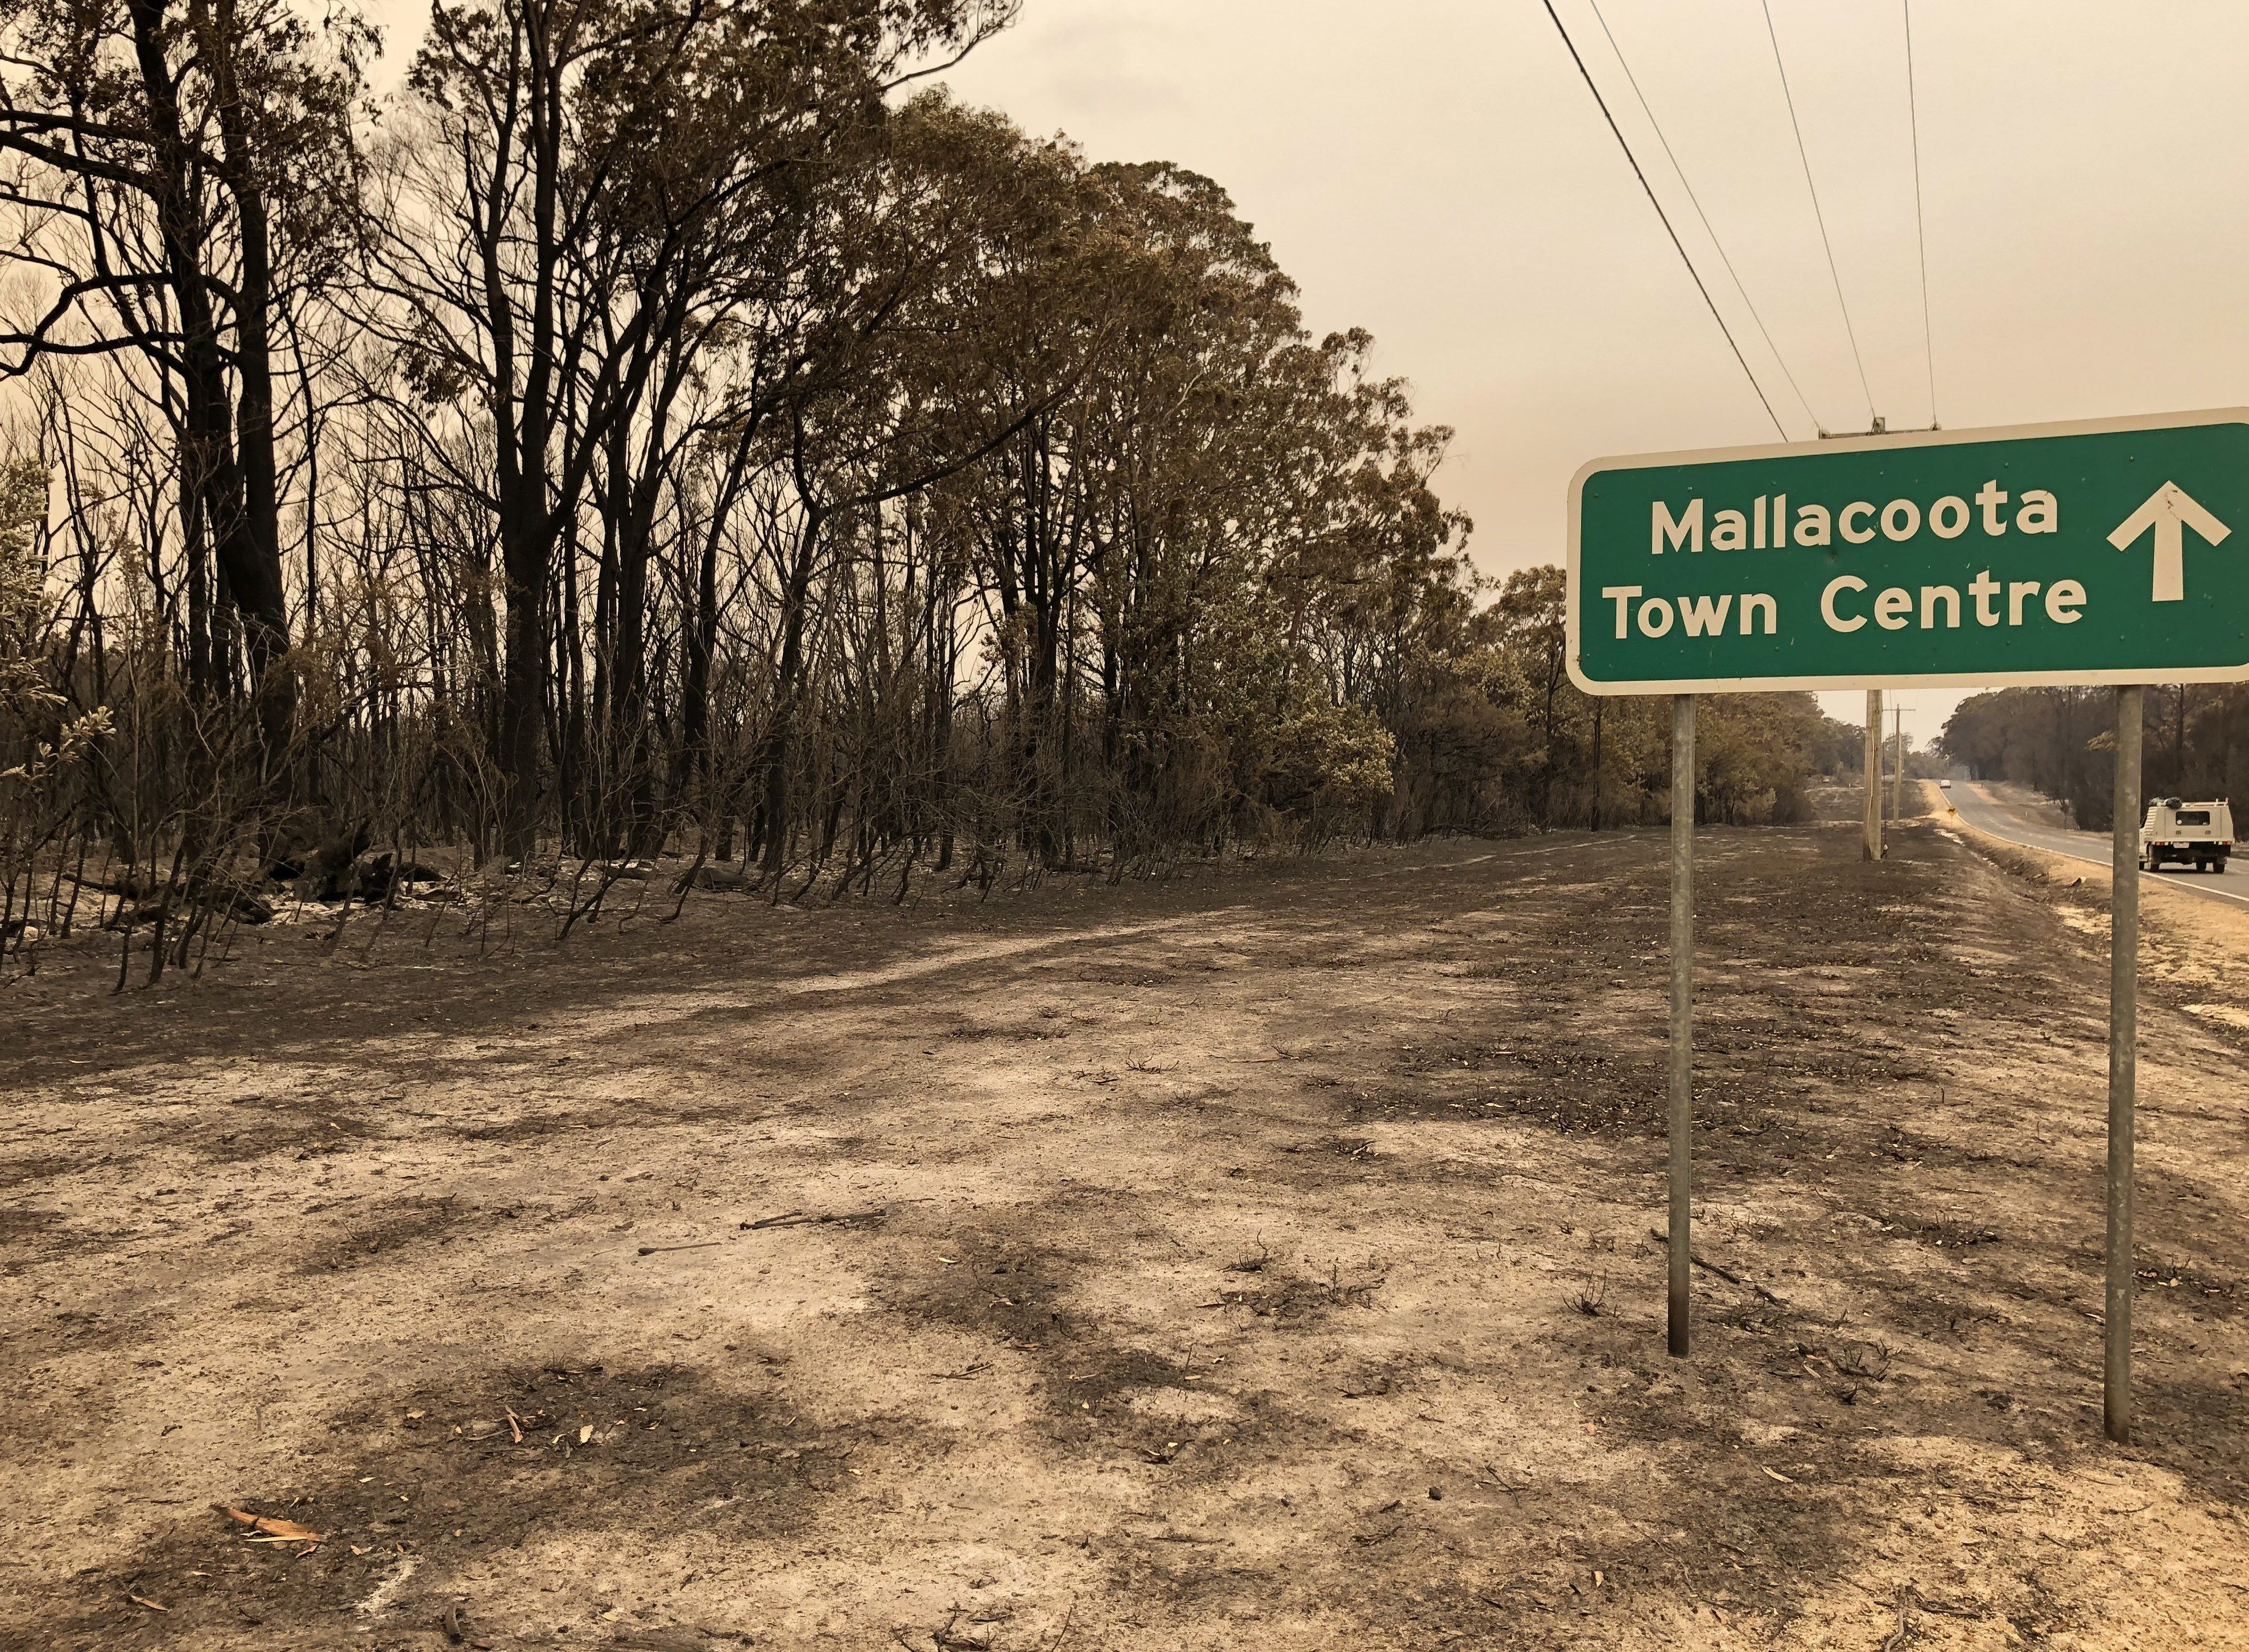 In Mallacoota, 4,000 residents and visitors have been stranded on the beach since Monday night